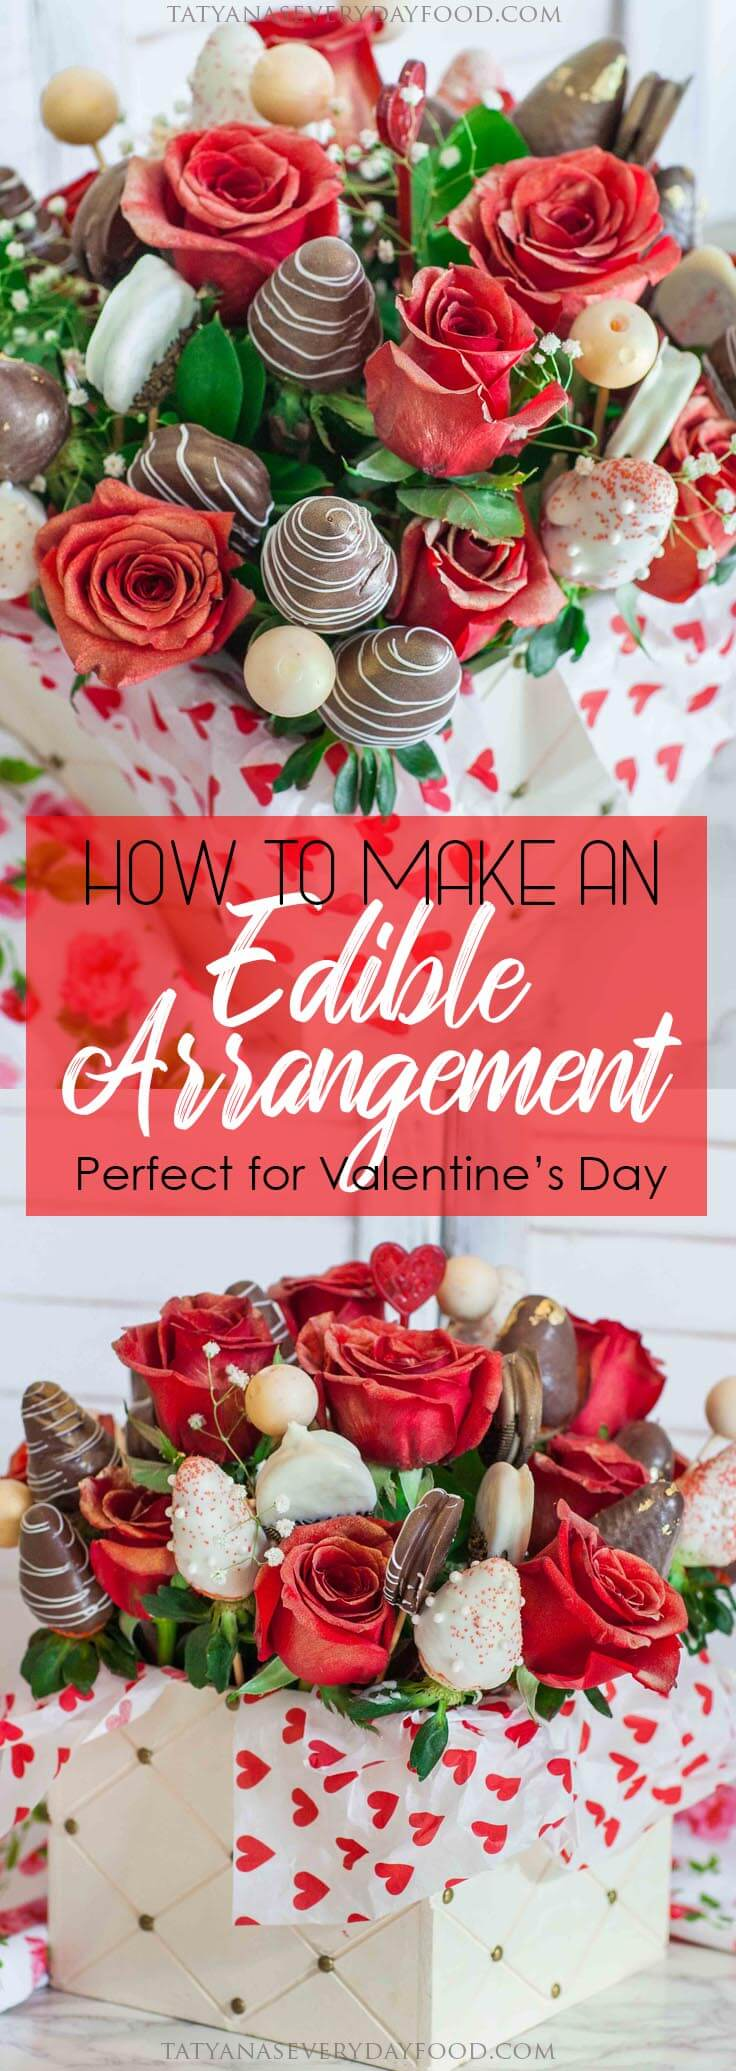 How To Make An Edible Arrangement with video tutorial!